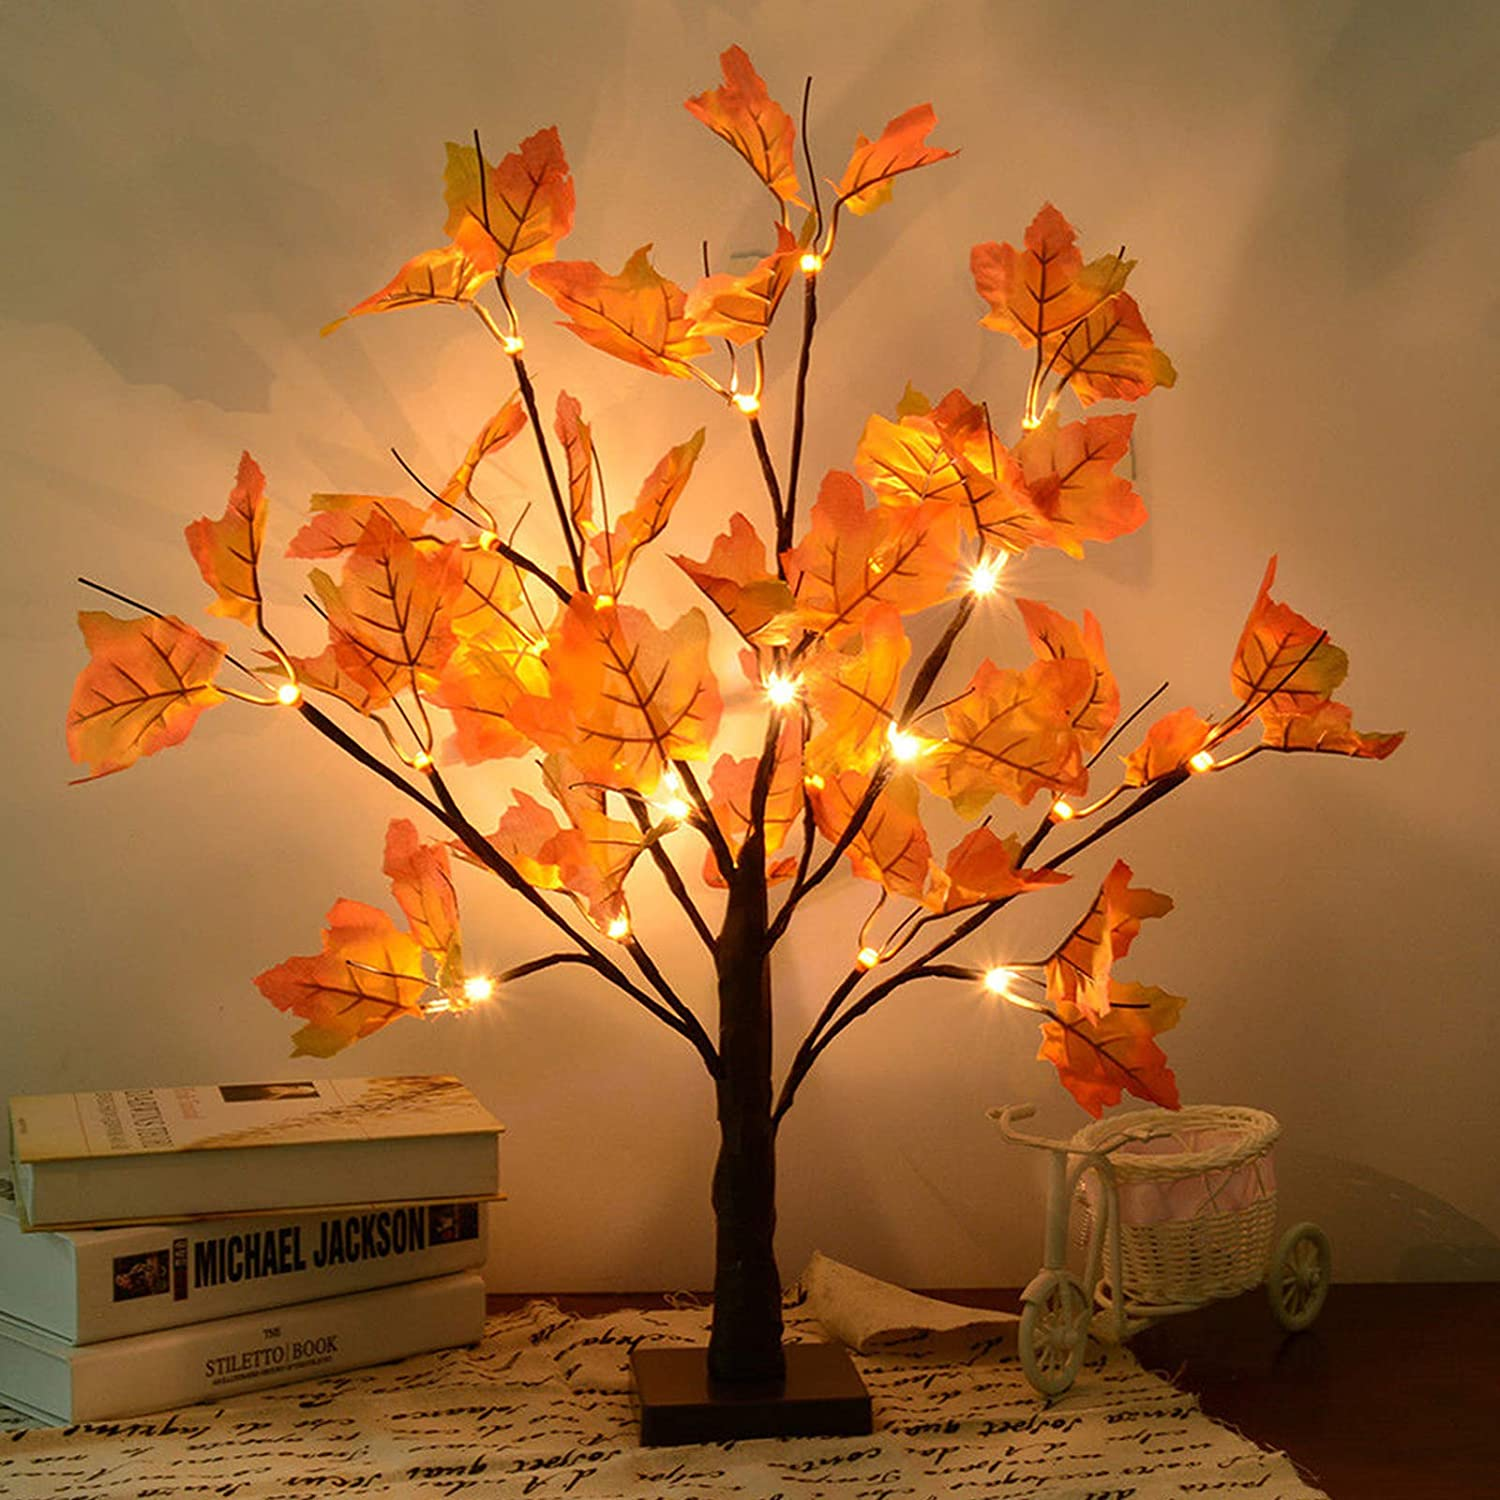 Amazon Com S Union Artificial Fall Lighted Maple Tree 24 Led Thanksgiving Christmas Decorations Table Lights Battery Operated For Christmas Wedding Party Gifts Indoor Outdoor Harvest Home Decor Home Kitchen